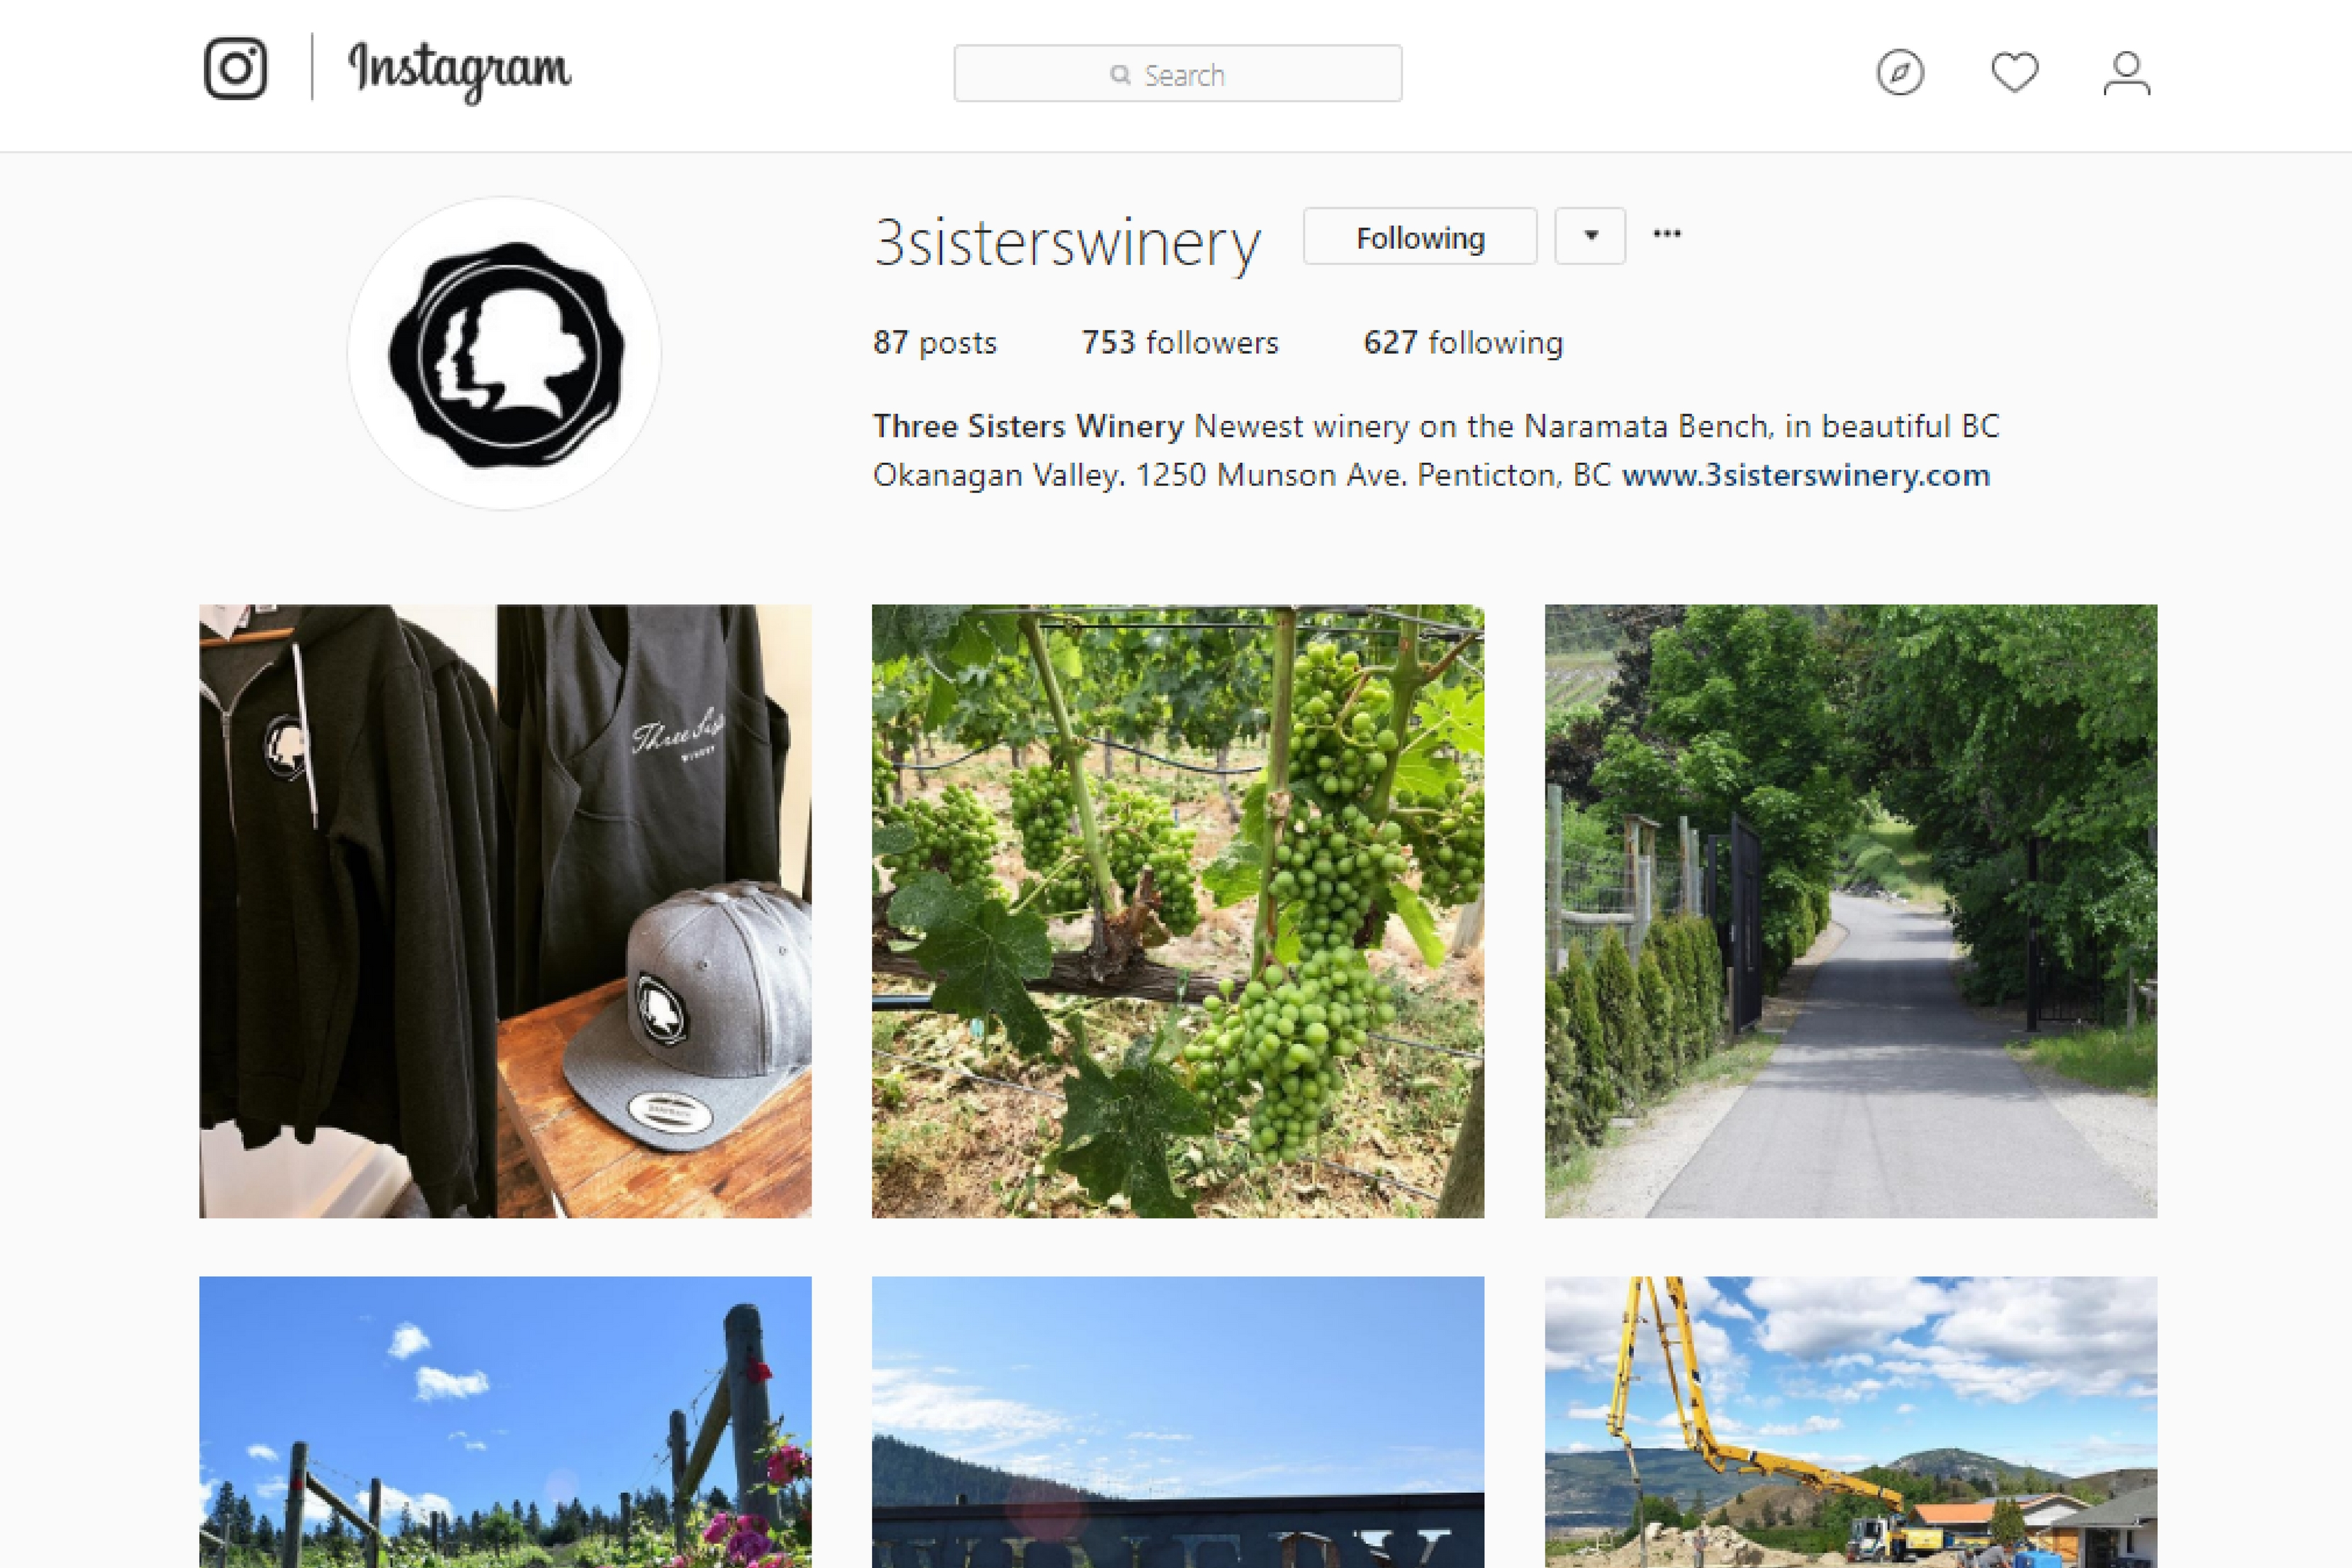 Social Media Management – For Three Sisters Winery